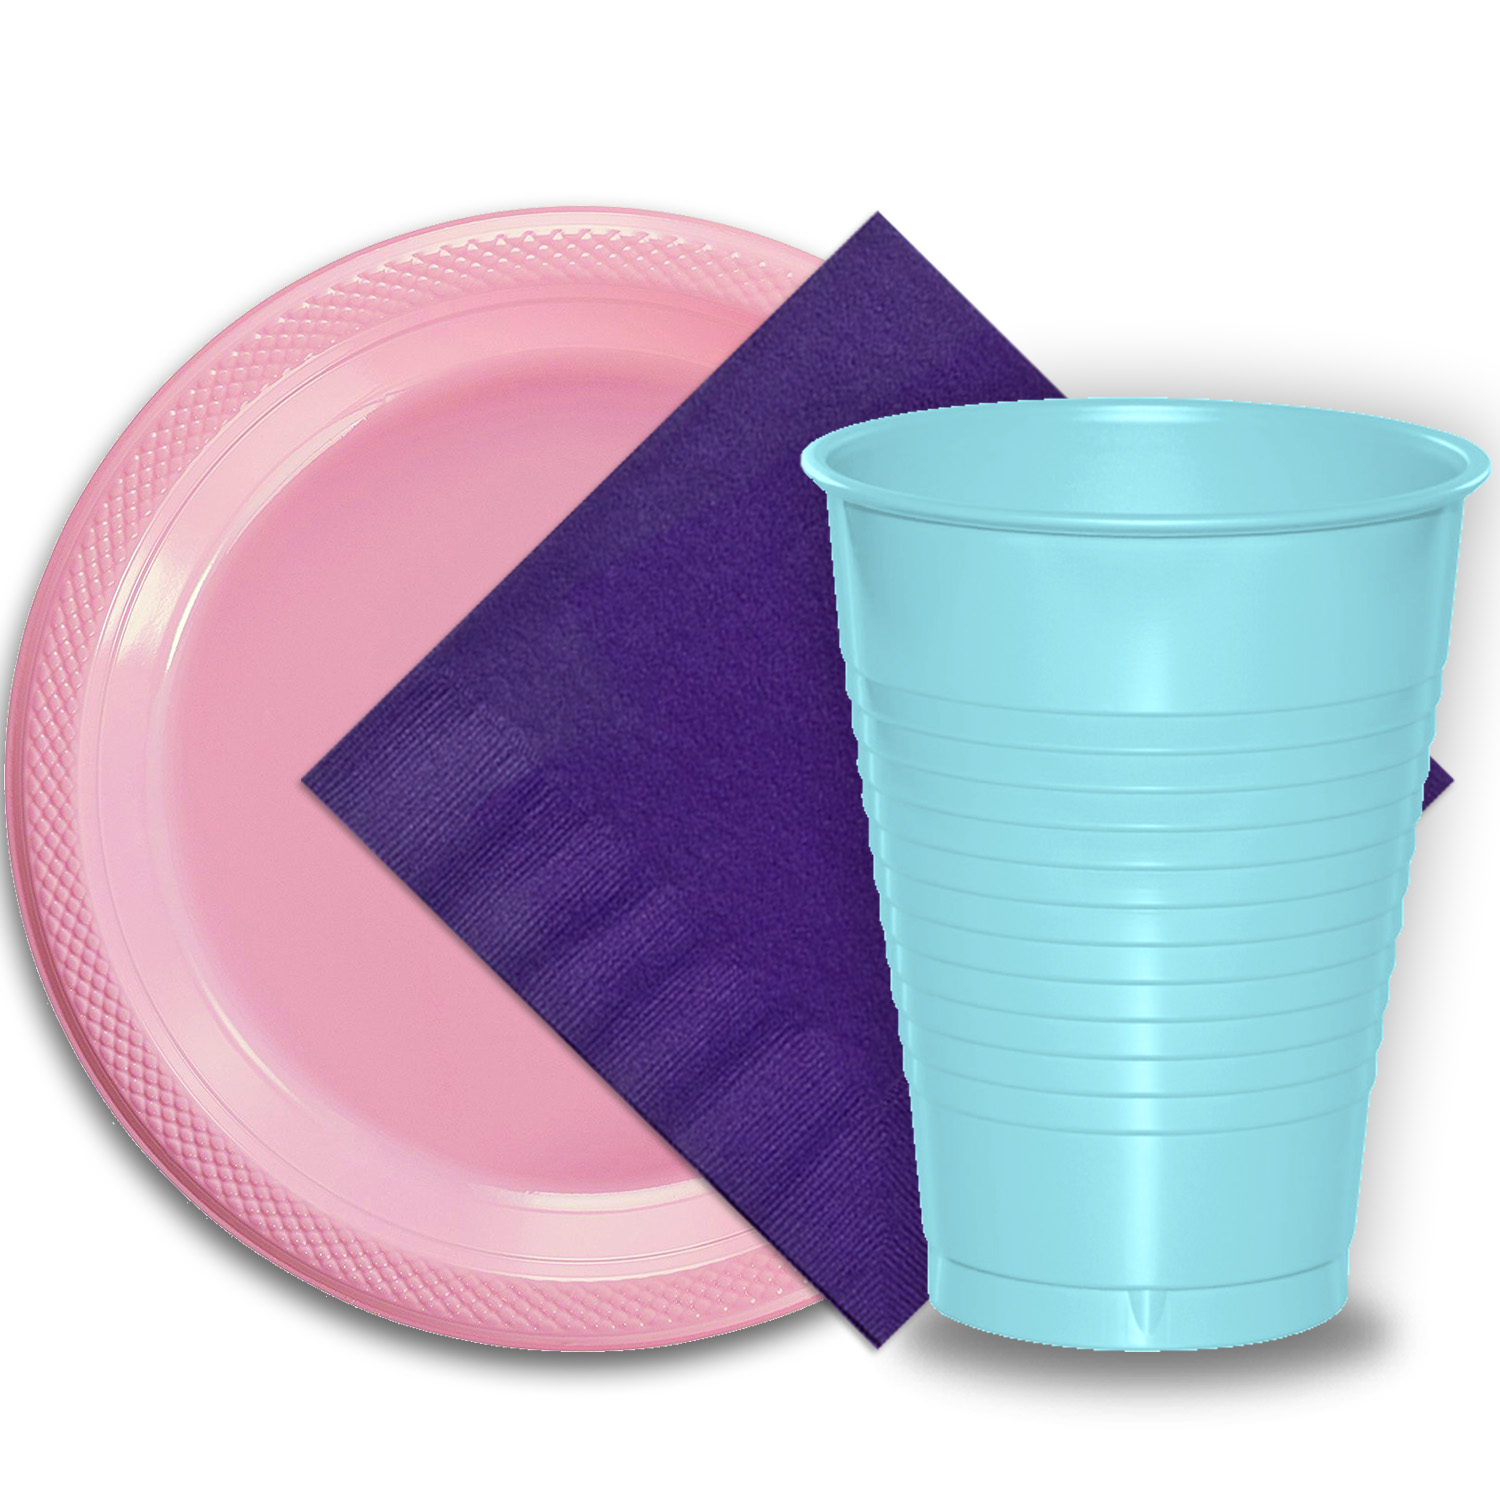 "50 Pink Plastic Plates (9""), 50 Light Blue Plastic Cups (12 oz.), and 50 Purple Paper Napkins, Dazzelling Colored Disposable Party Supplies Tableware Set for Fifty Guests."